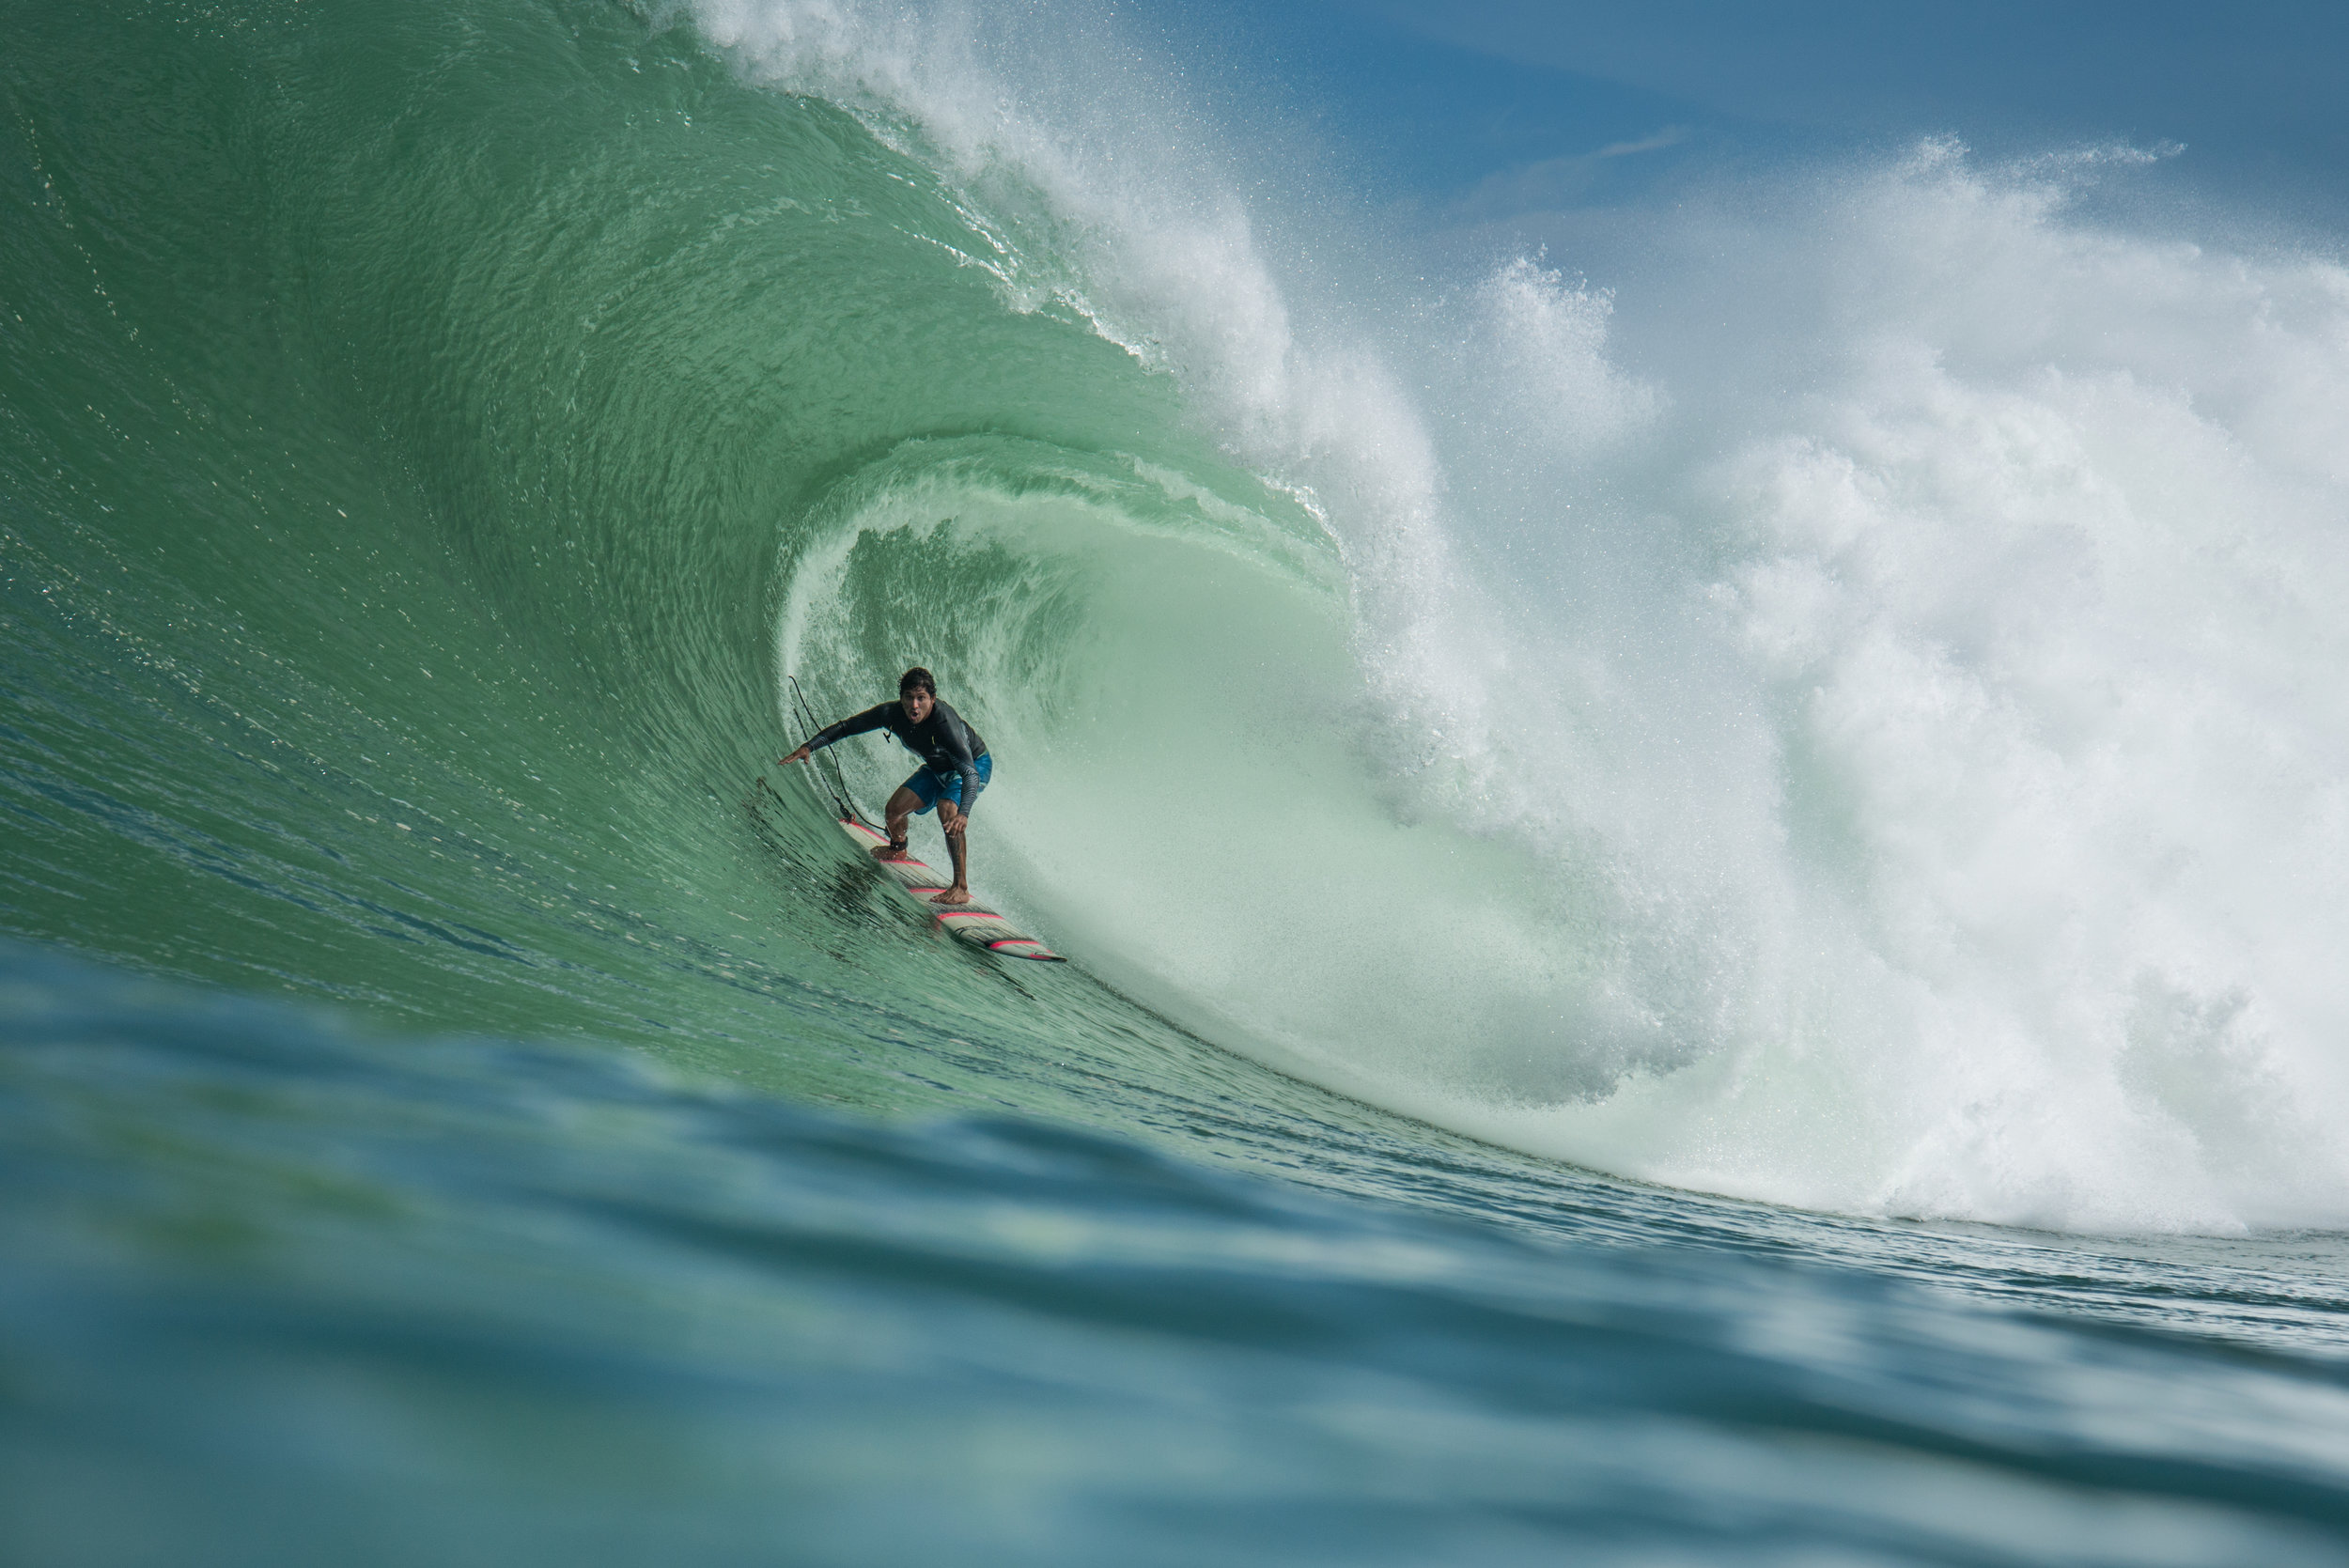 Maria's late friend and surfing legend Oscar Moncada at Zicatela in Puerto Escondido